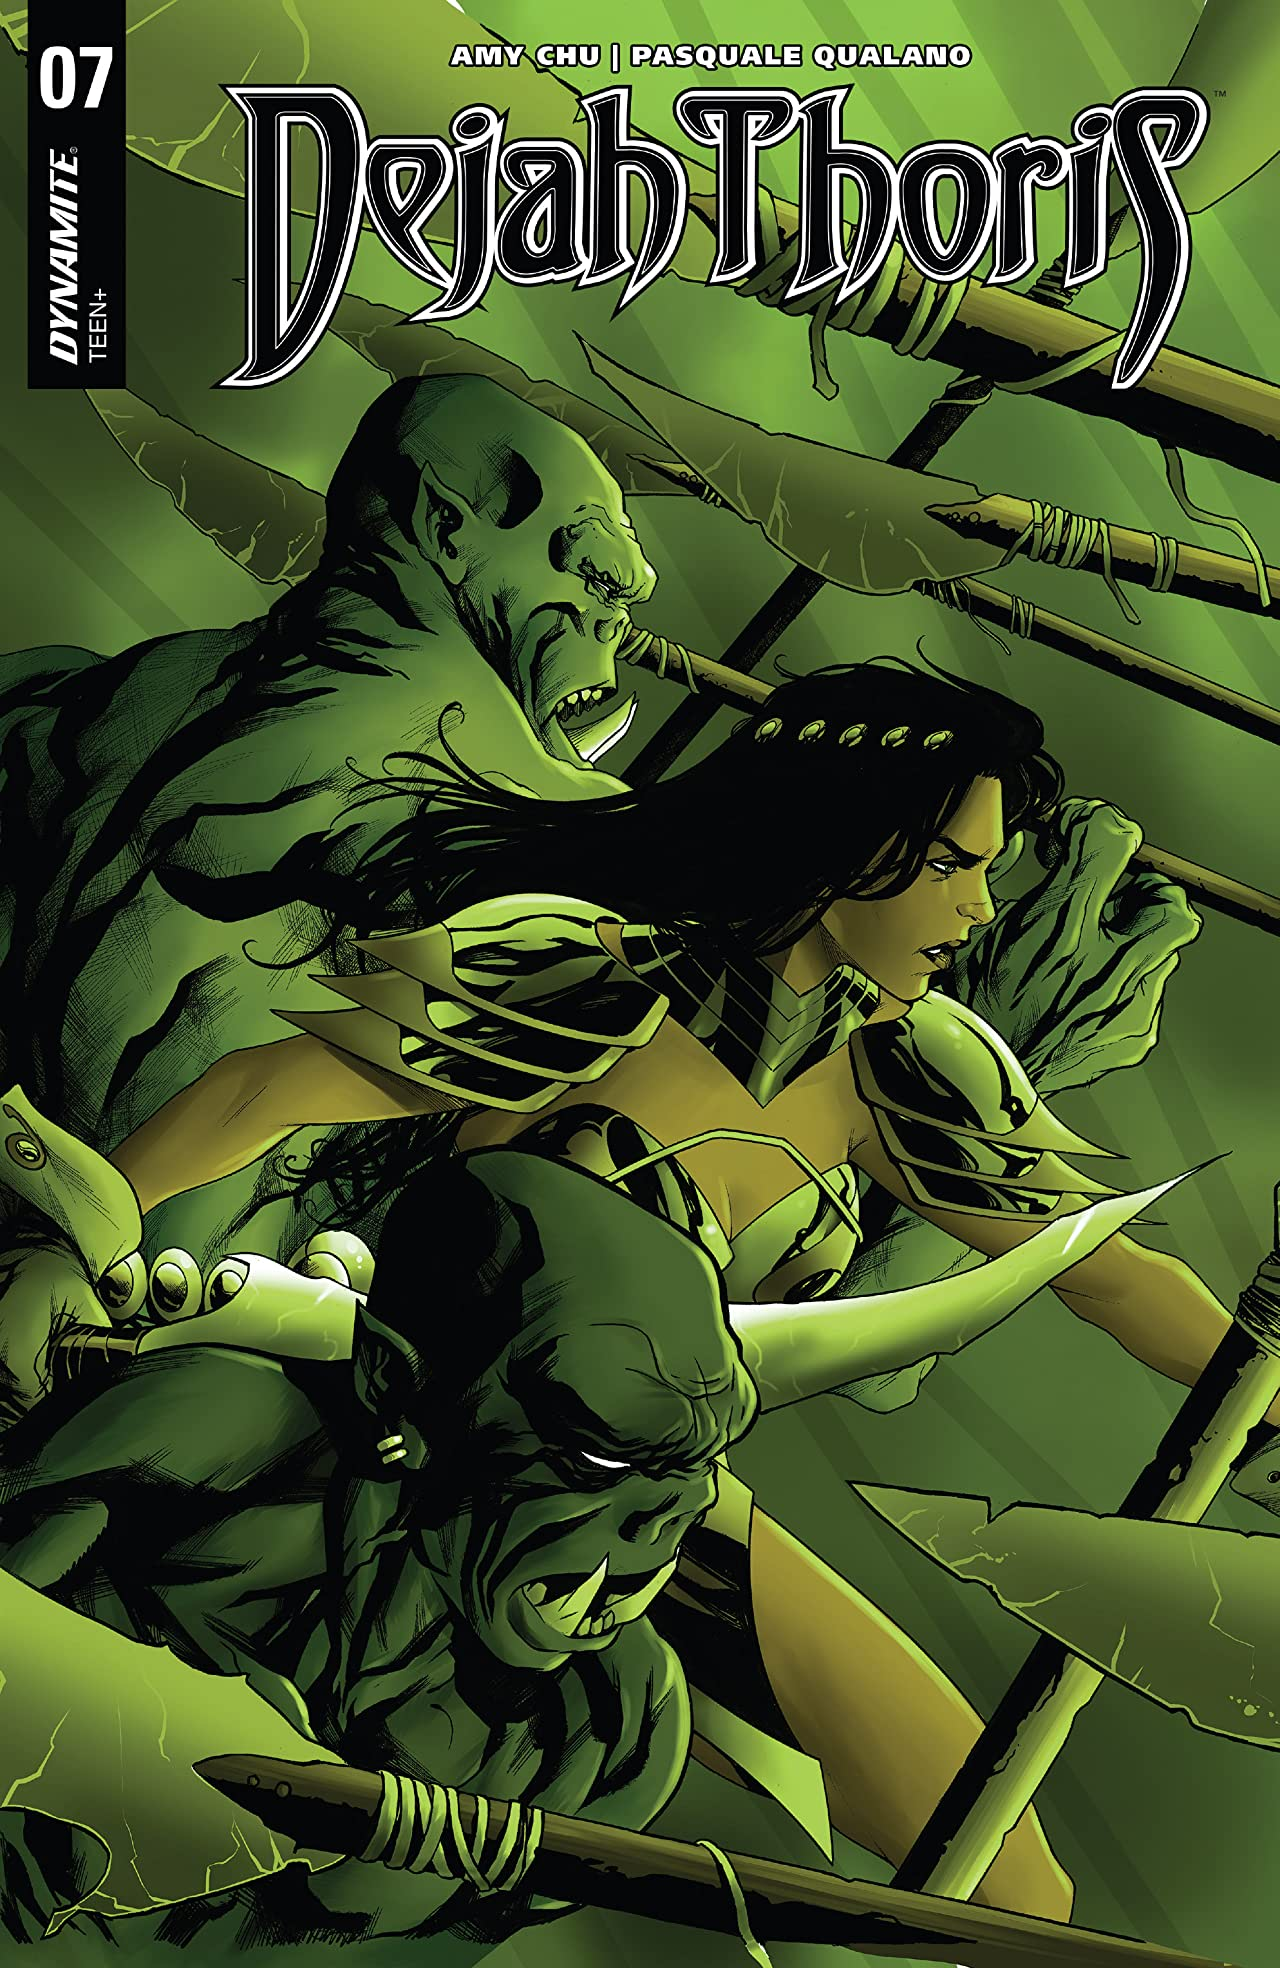 Dejah Thoris Vol. 4 No.7